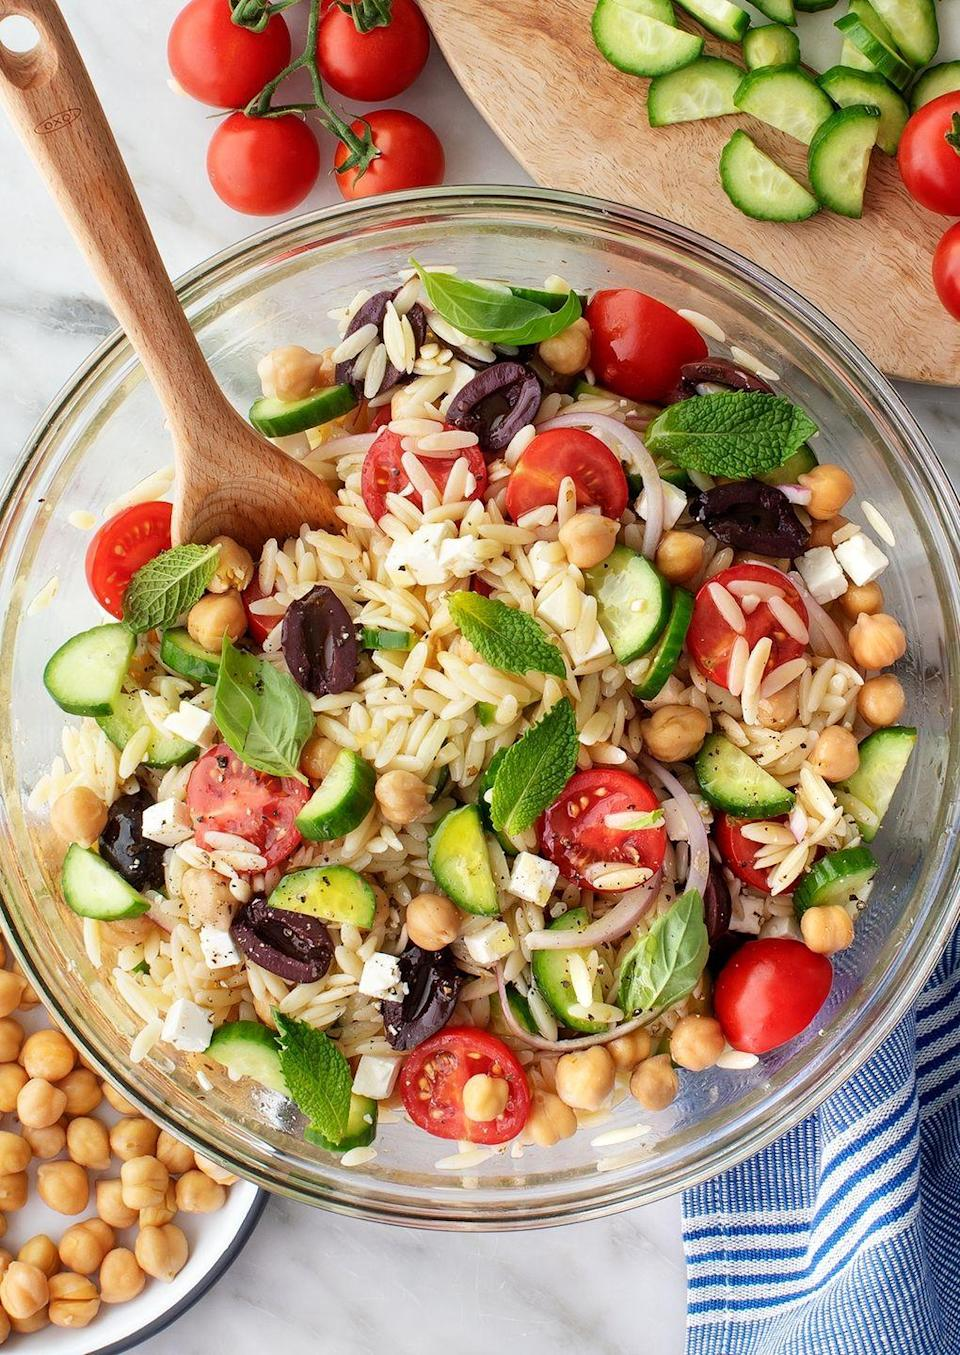 """<p>This grain-based salad is studded with tons of fresh flavor, thanks to summer garden staples like cucumbers, tomatoes, and basil. </p><p><a href=""""https://www.loveandlemons.com/orzo-salad/"""" rel=""""nofollow noopener"""" target=""""_blank"""" data-ylk=""""slk:Get the recipe."""" class=""""link rapid-noclick-resp"""">Get the recipe. </a></p>"""